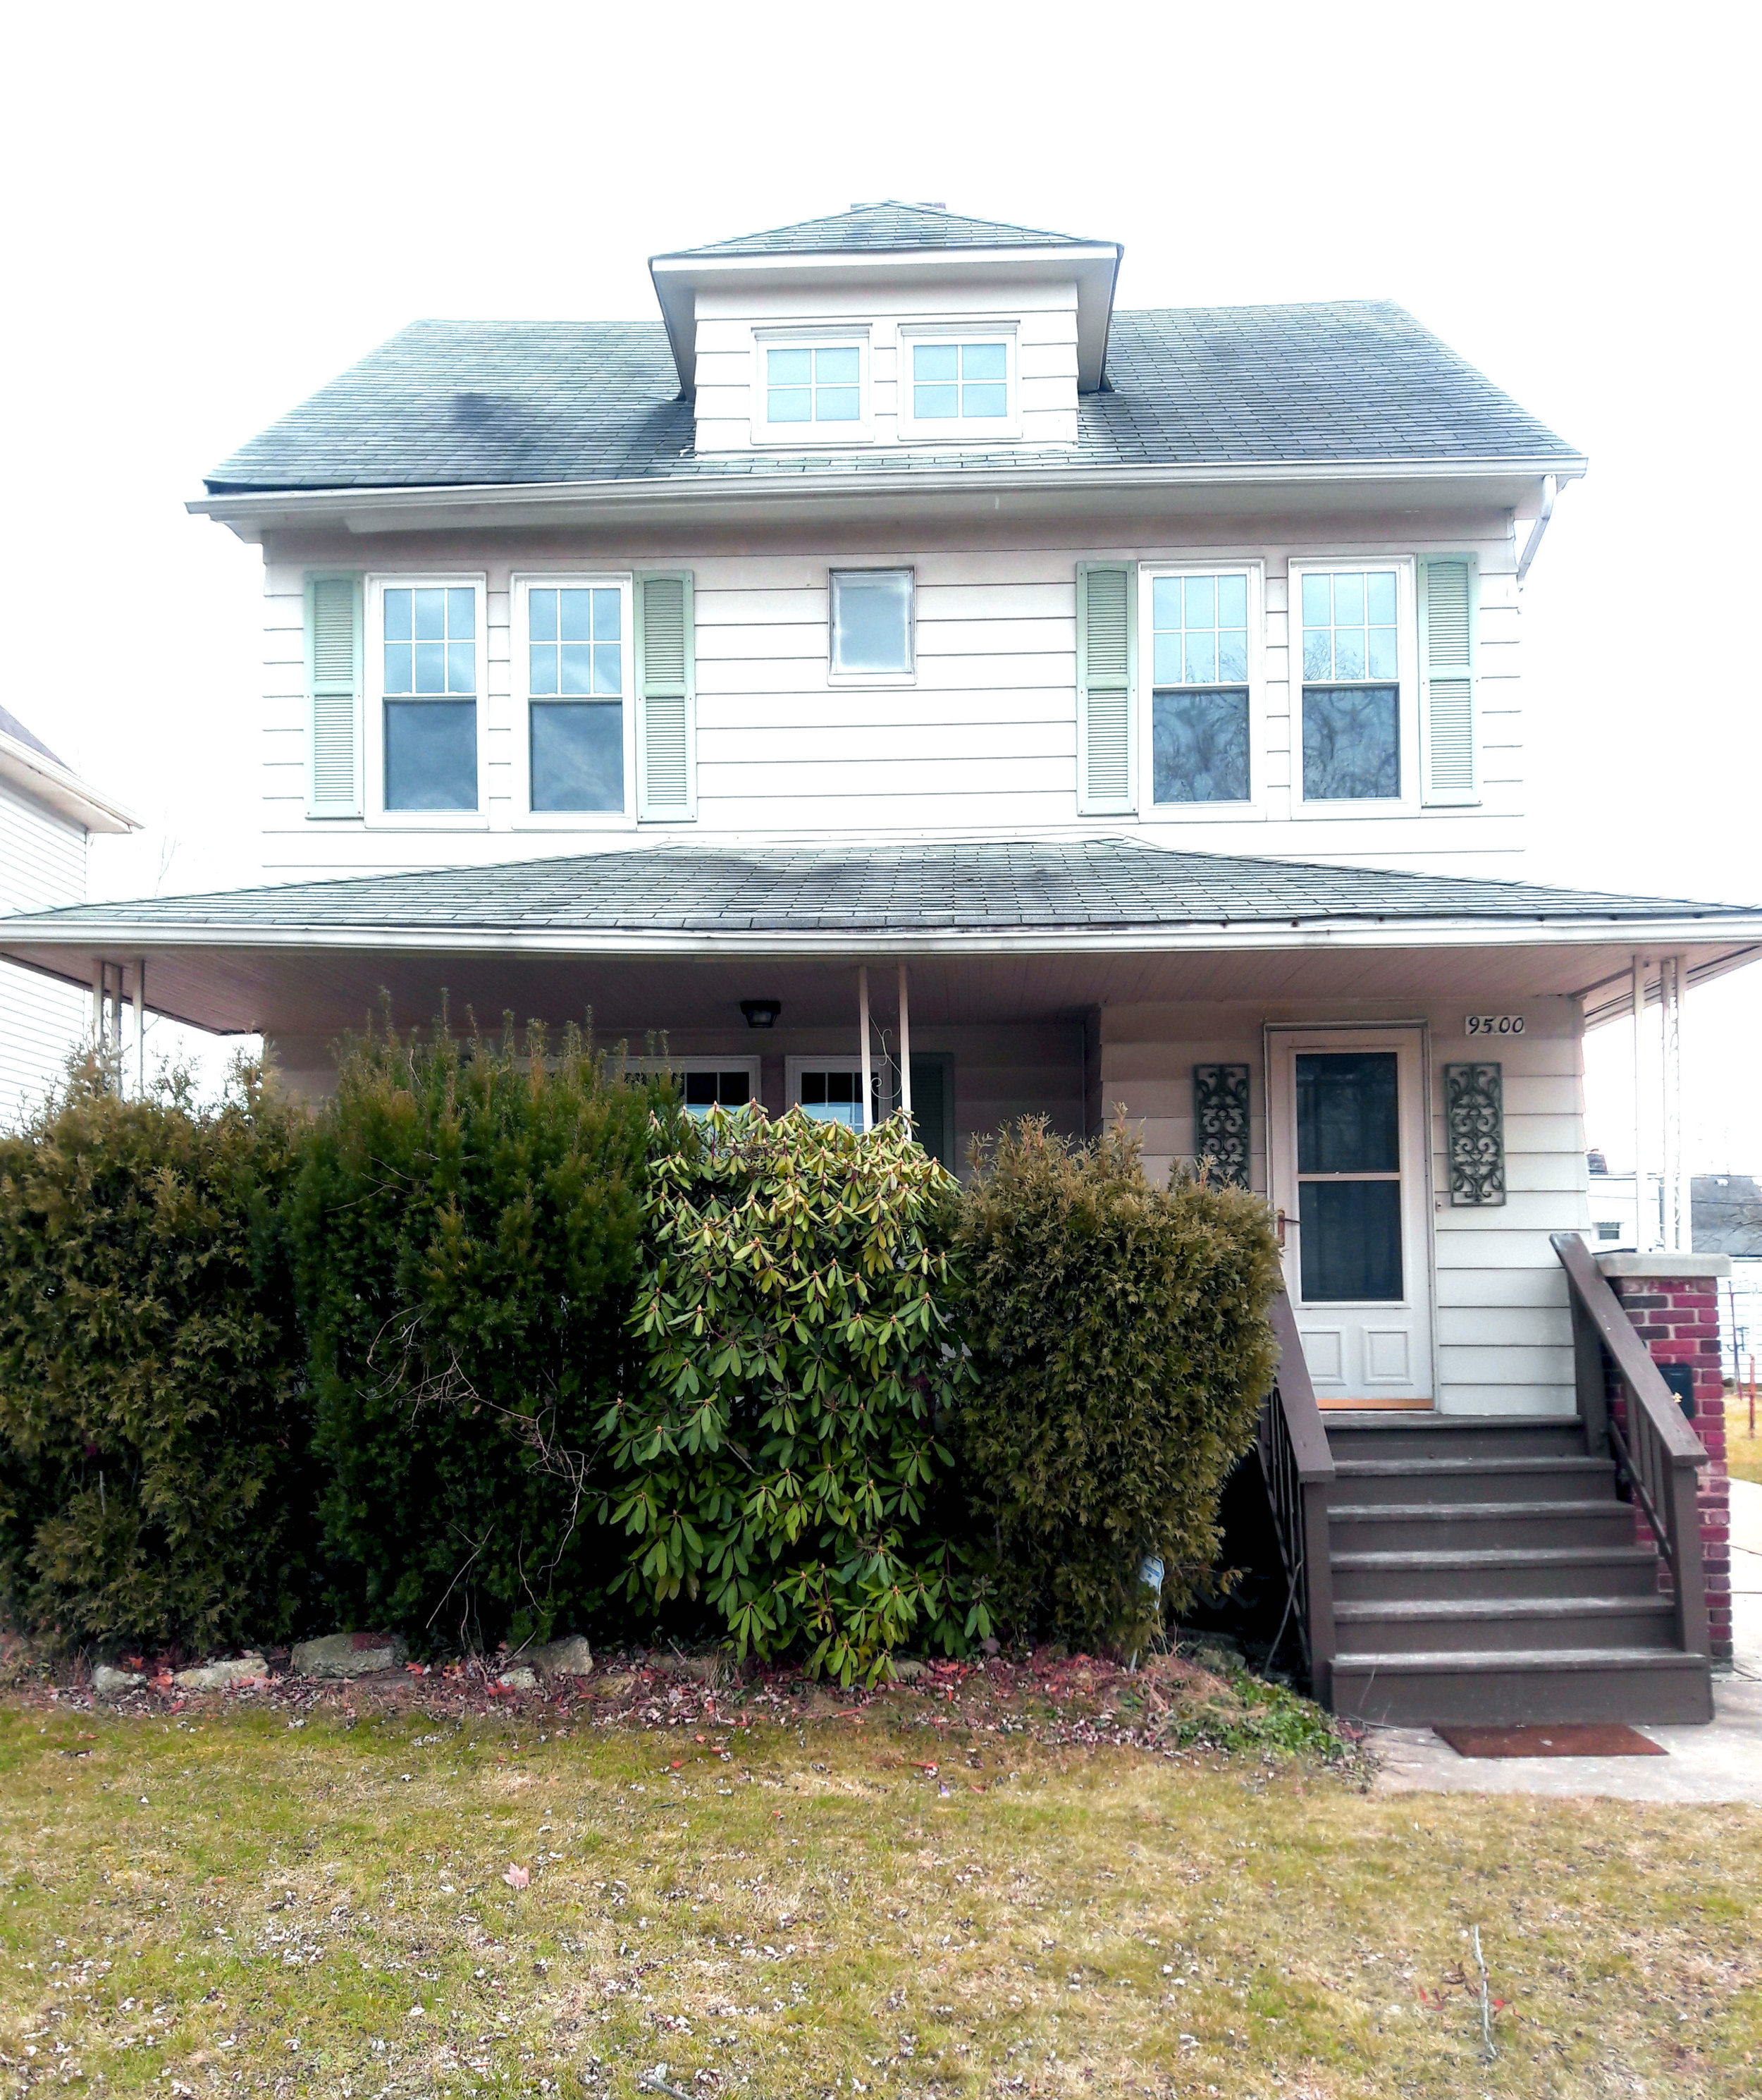 9500 Park Heights Dr., Garfield Hts. | 4 bed 2 bath | 1,512 Sq. Ft. | $37,000